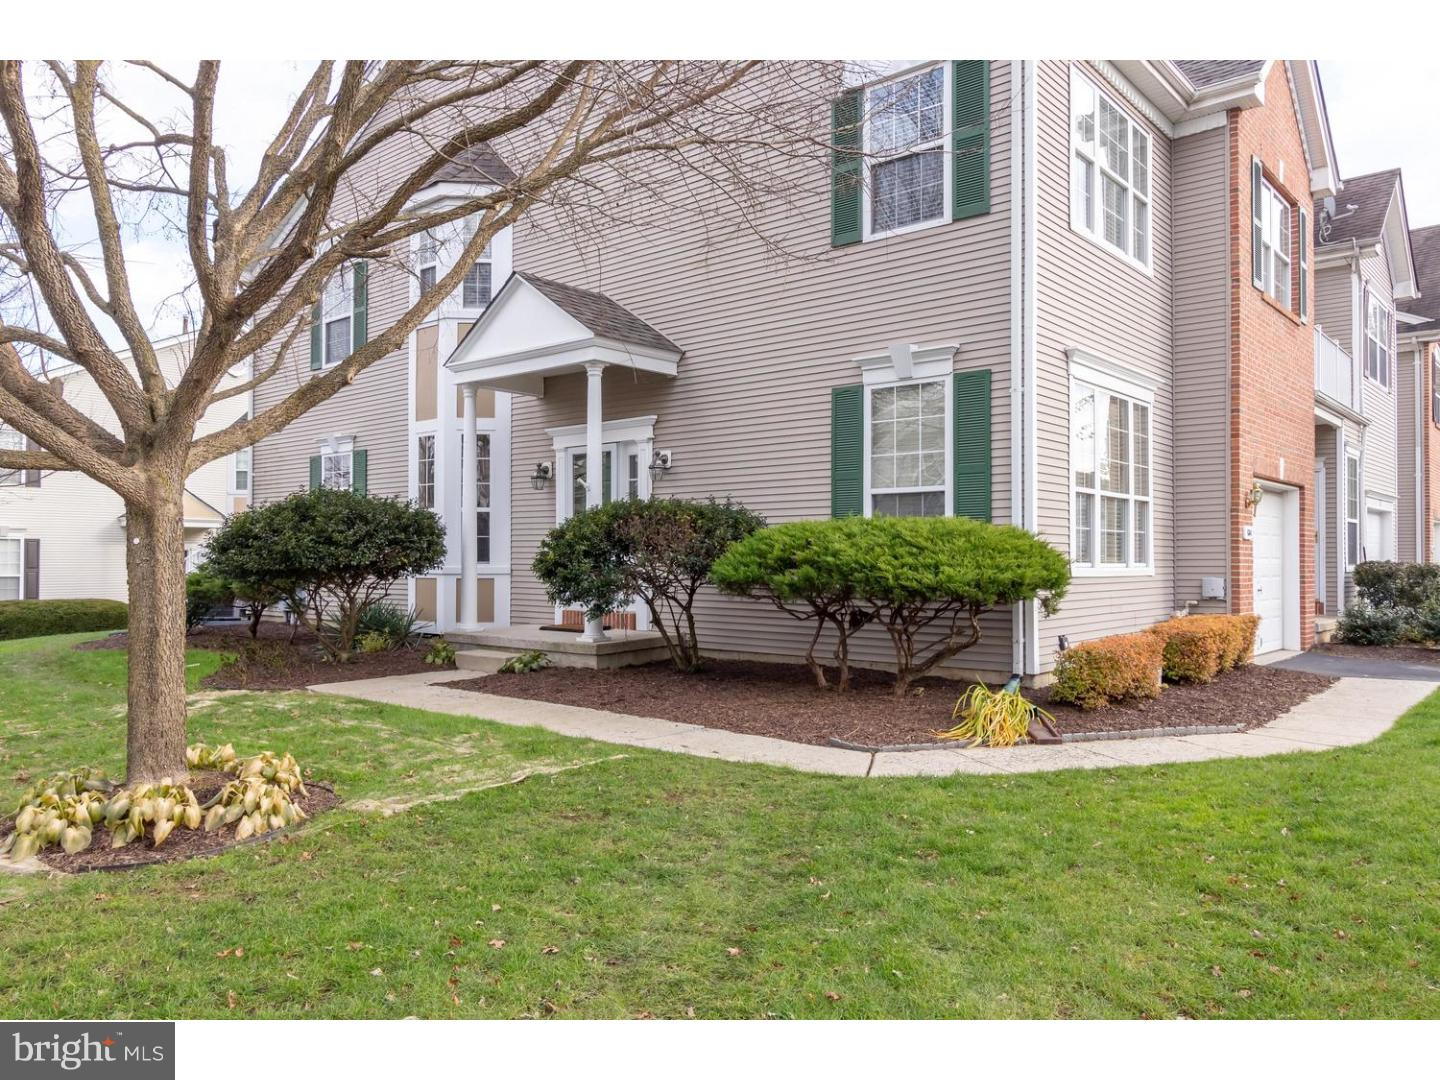 134 Lydia Lane West Chester, PA 19382